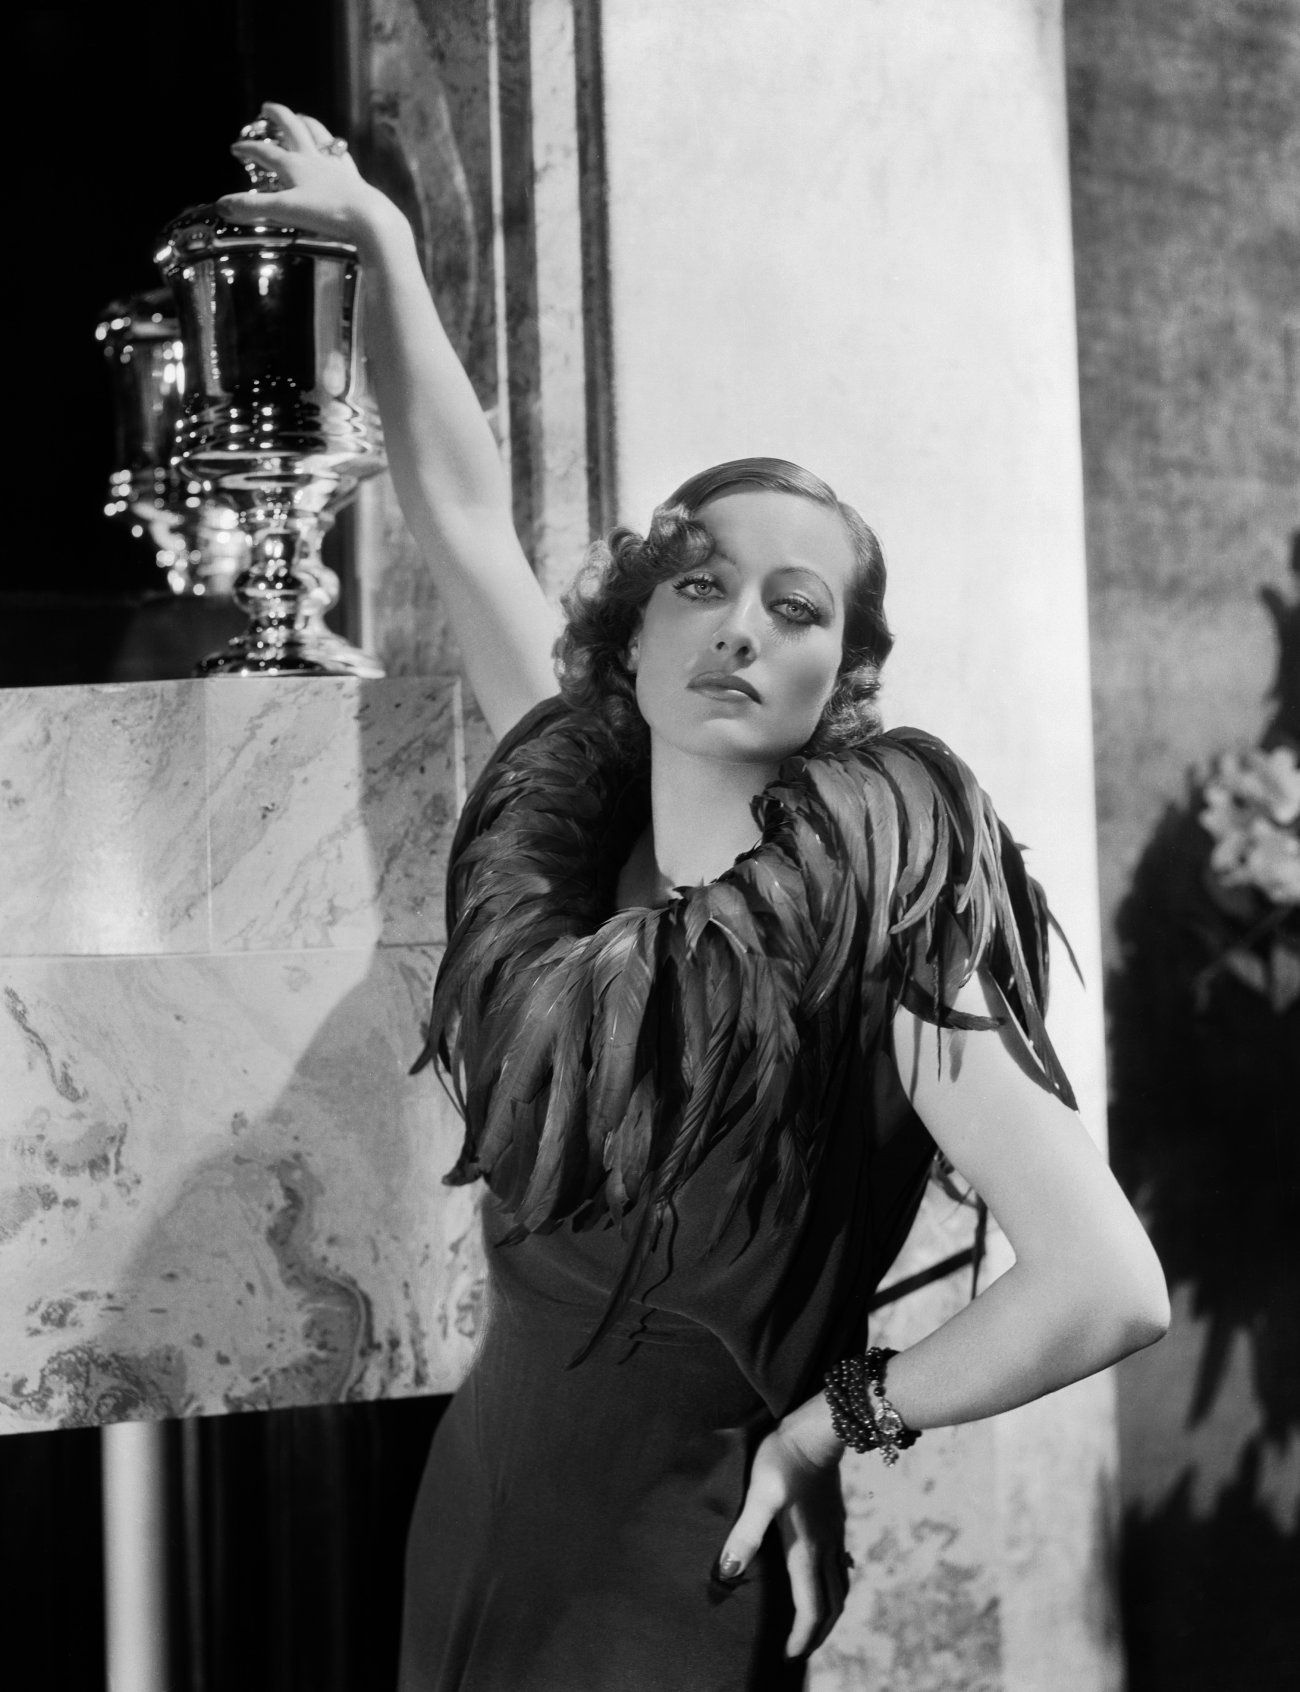 joan crawford fashion 1920s | In 1927 she received her first top billing with her big breakthrough ...